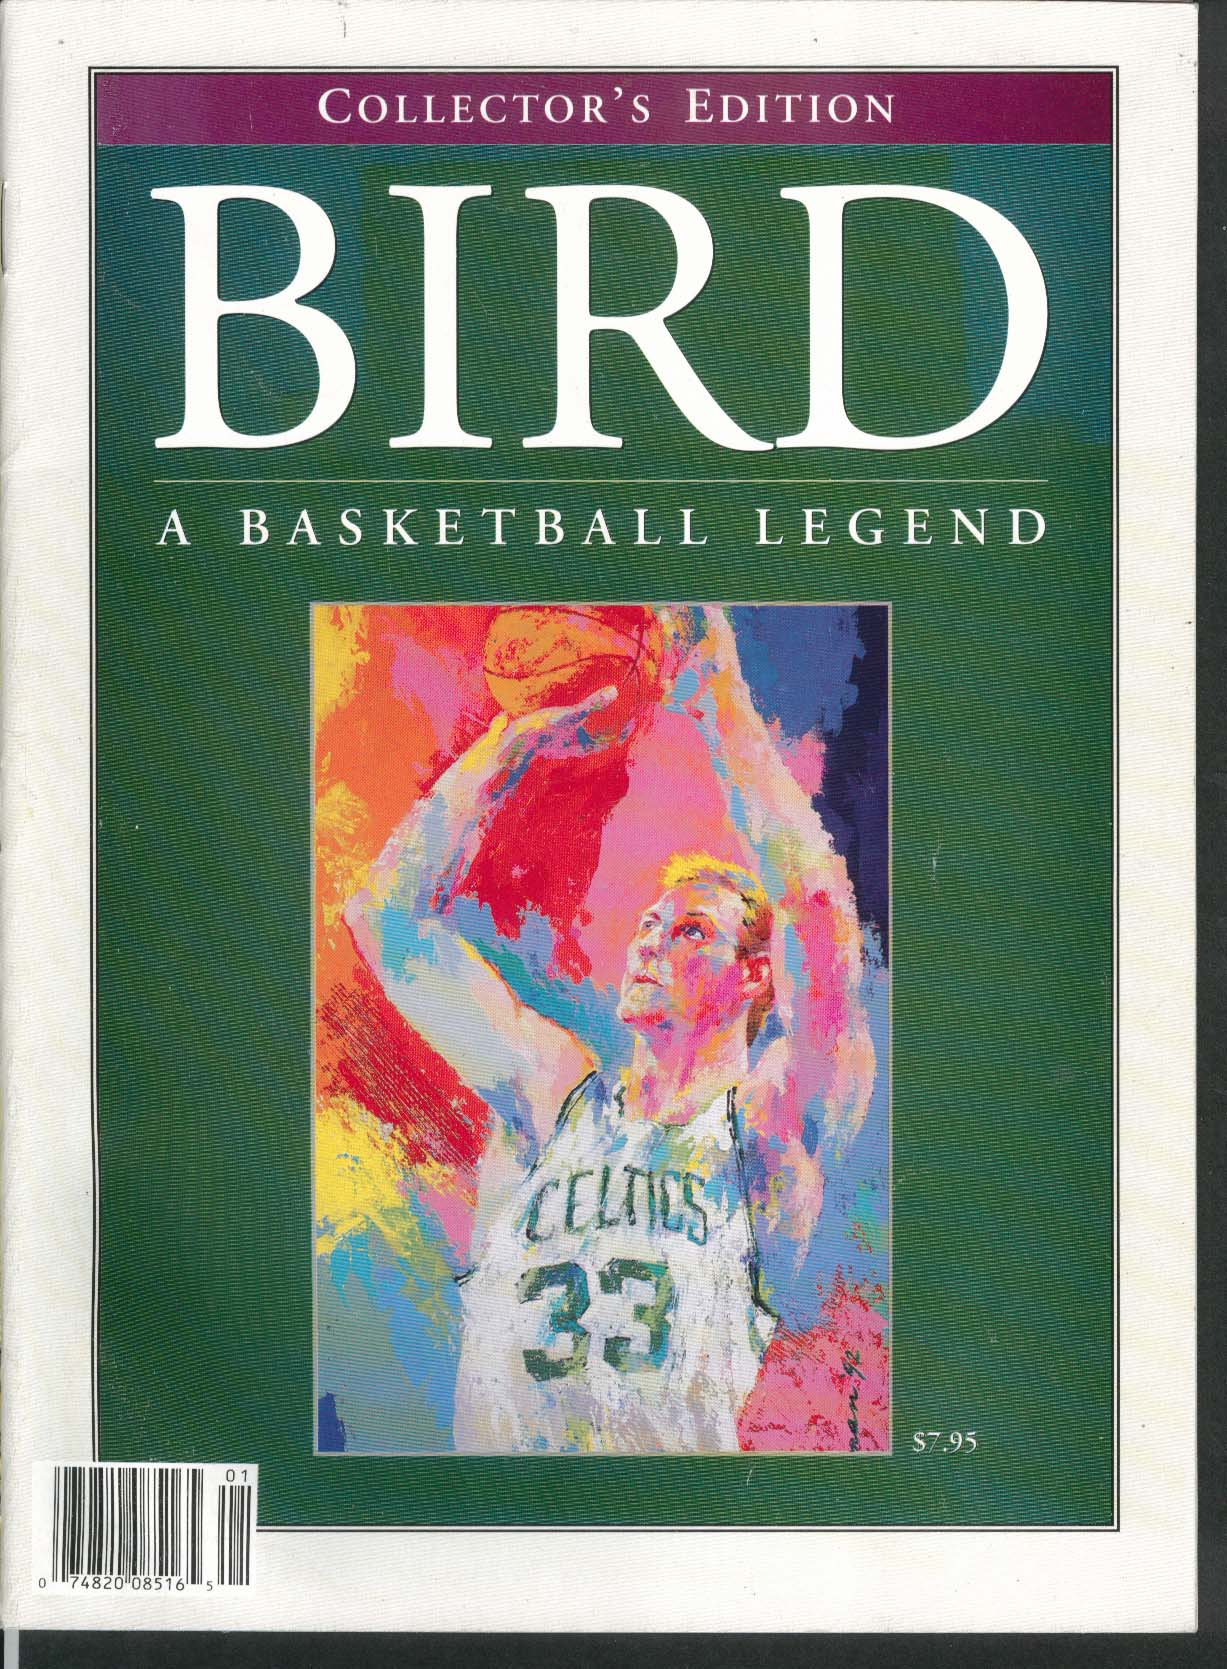 BIRD: A Basketball Legend Collector's Edition Larry Bird